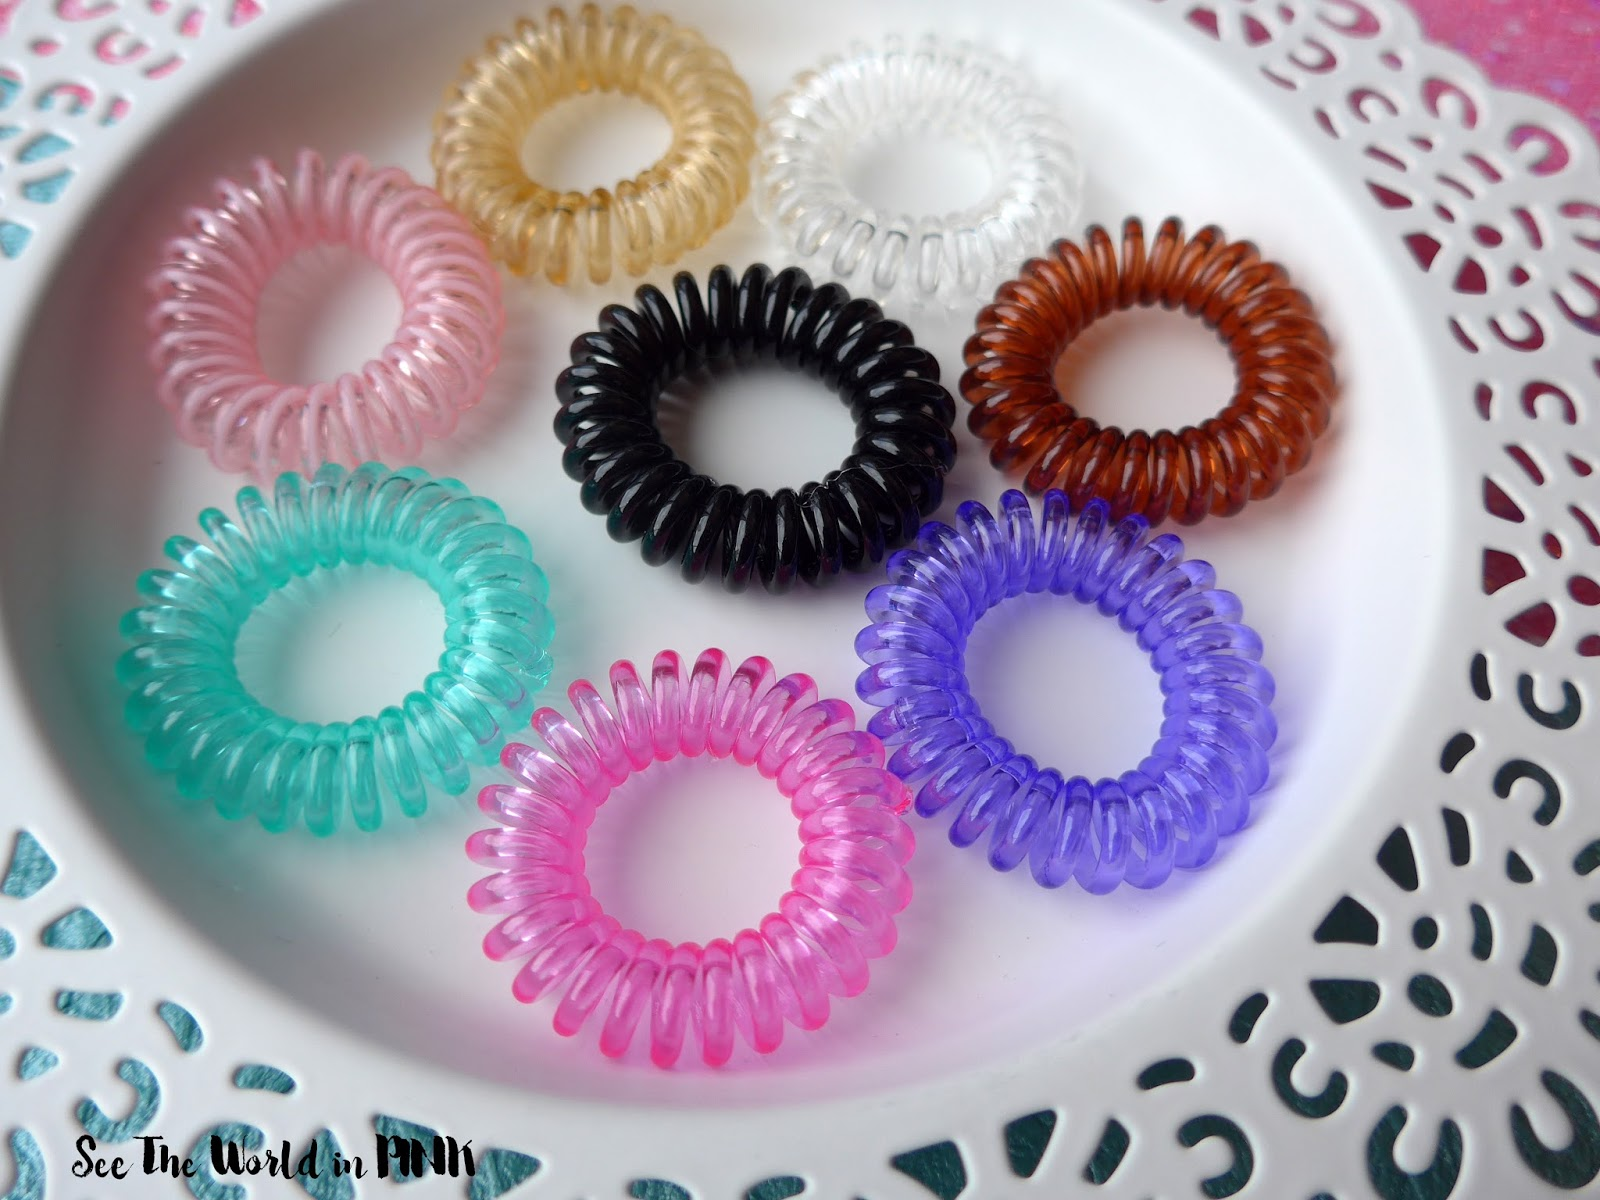 Gummiband Hair Cords - Review + A Special Offer!